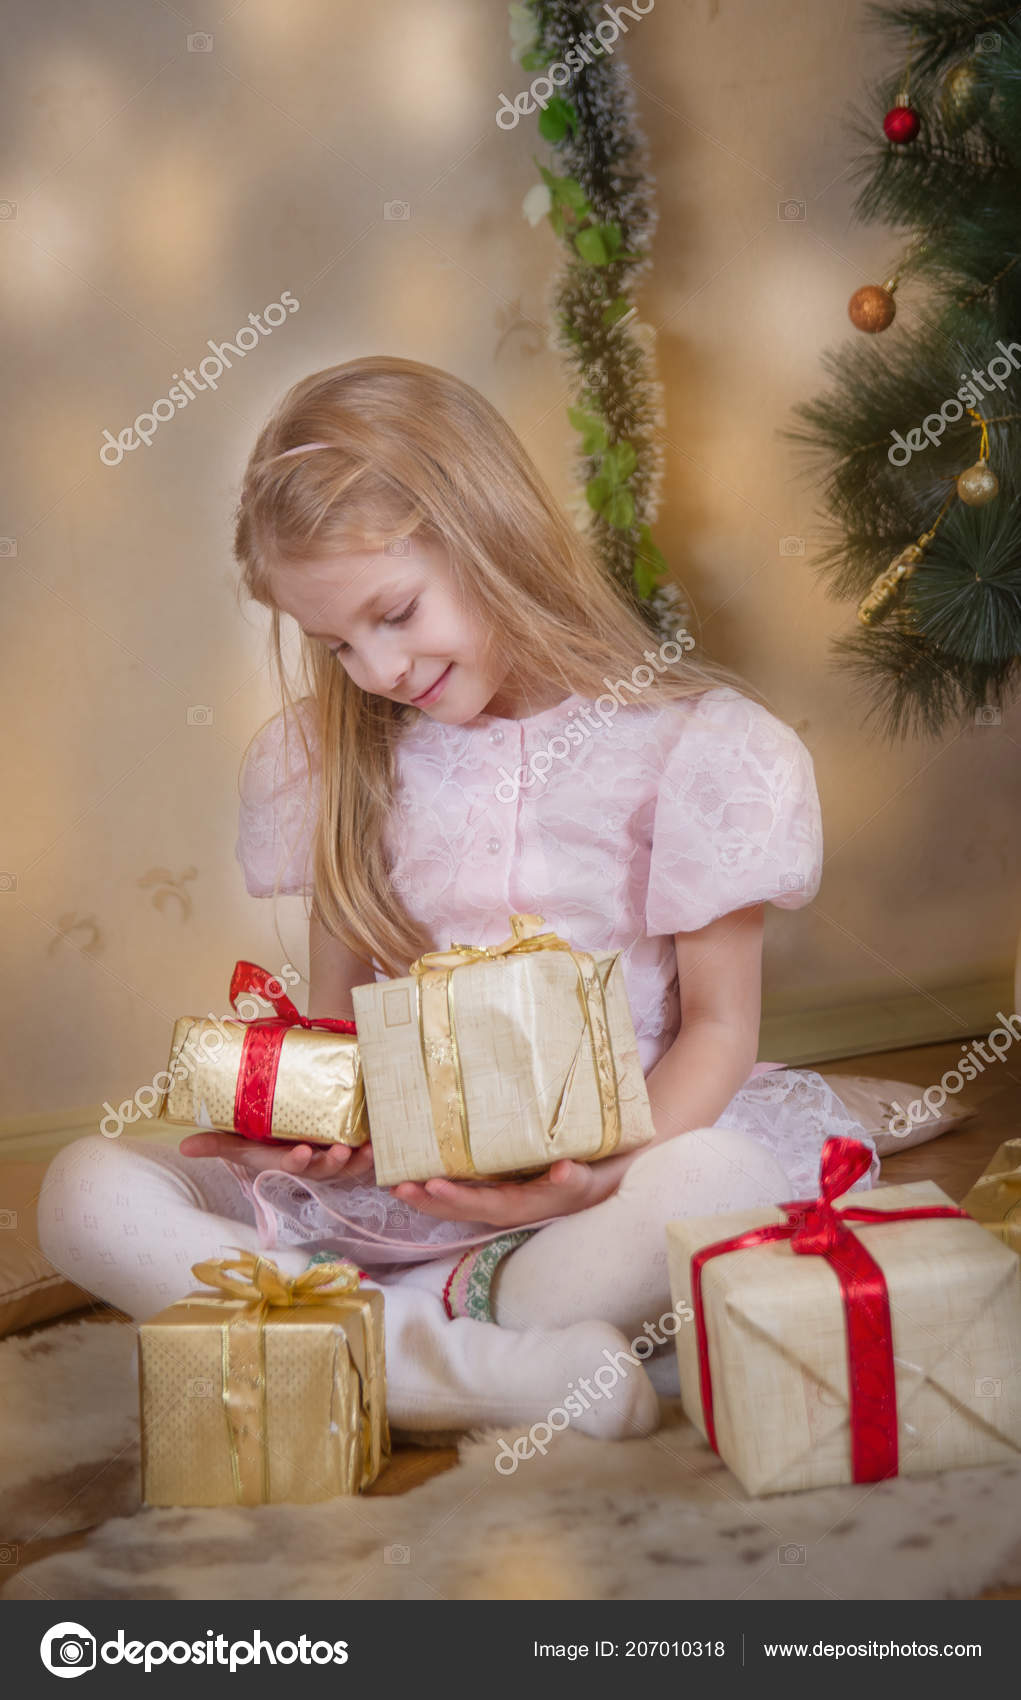 Cute Christmas Gifts For Girlfriend.Cute Girl Christmas Gifts Dreaming Stock Photo C Angel A